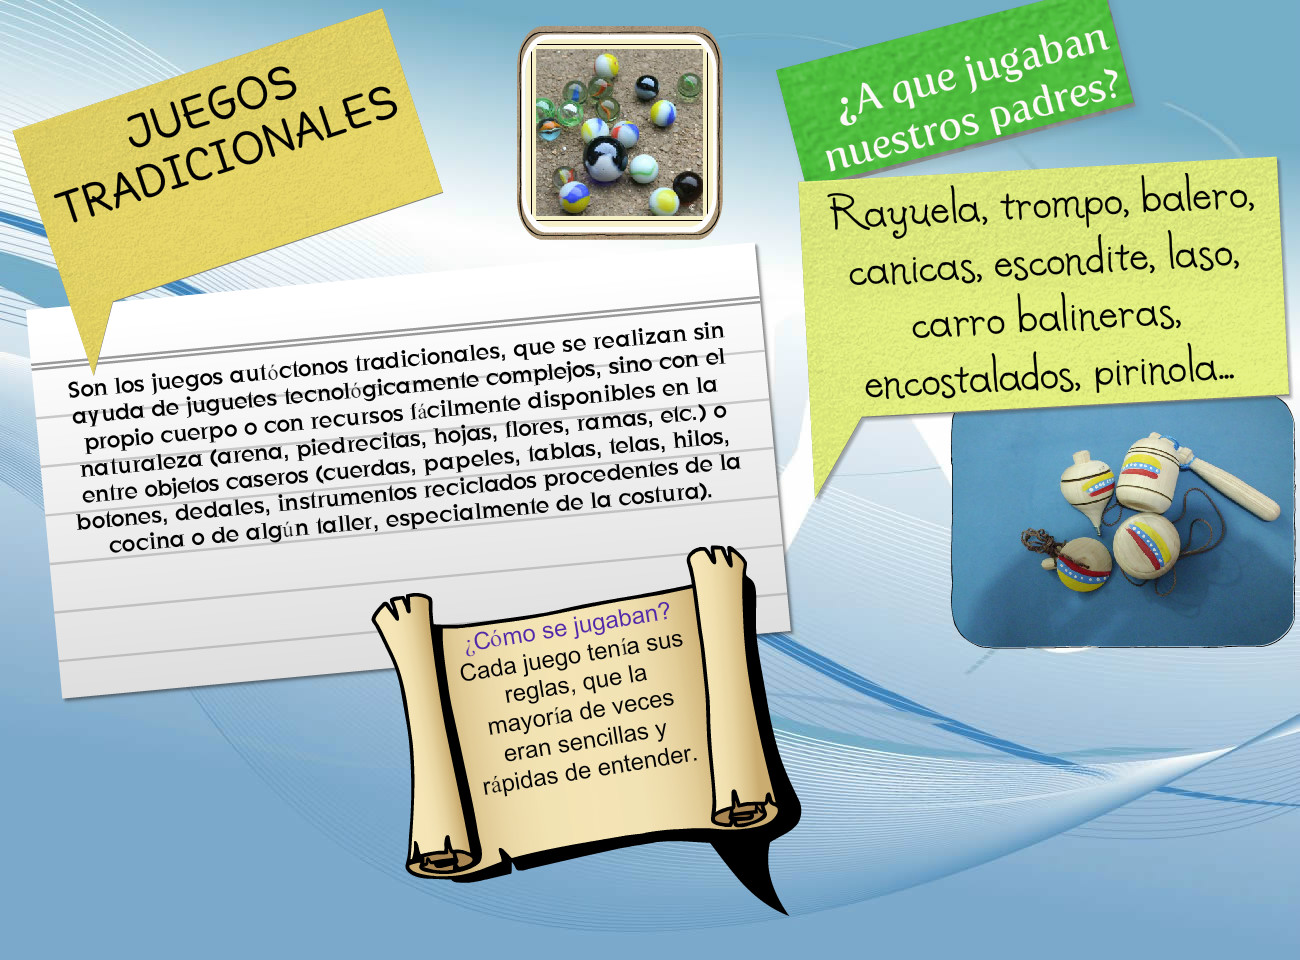 Juegos Tradicionales Text Images Music Video Glogster Edu